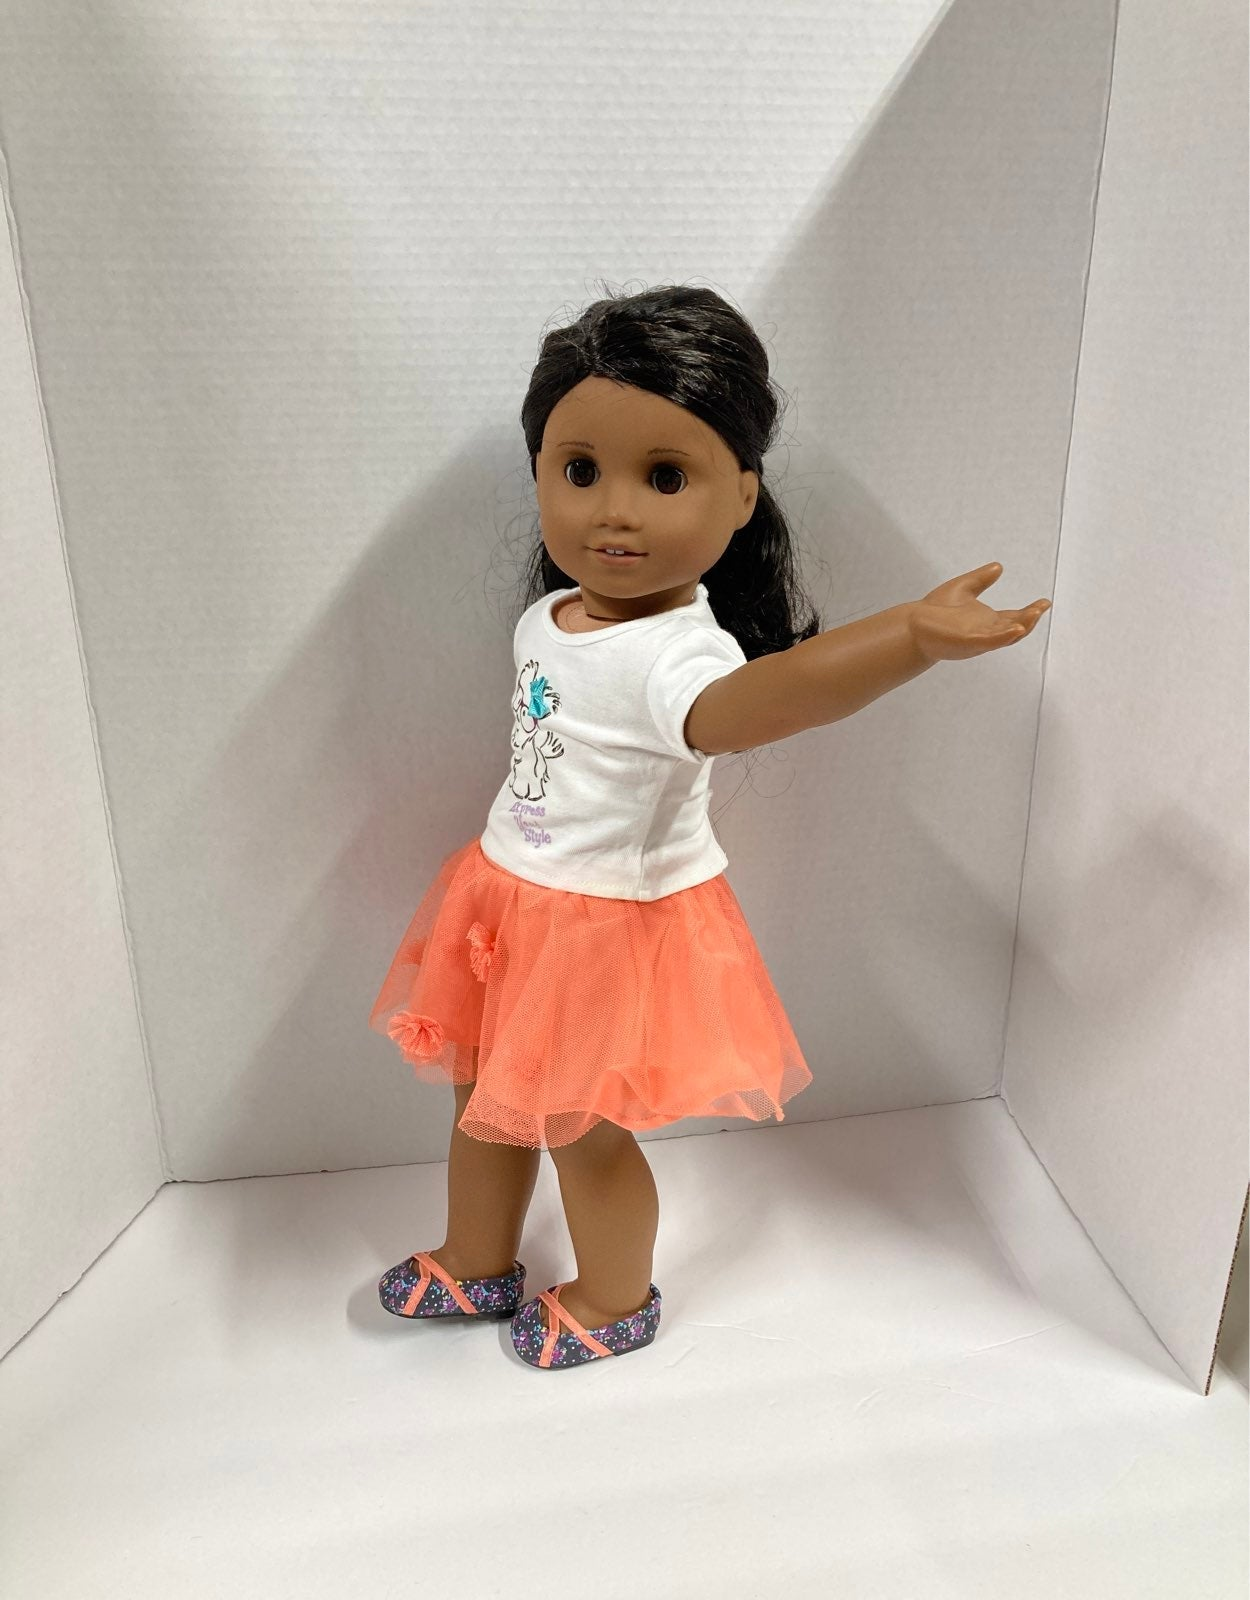 American Girl Doll - Coconut outfit